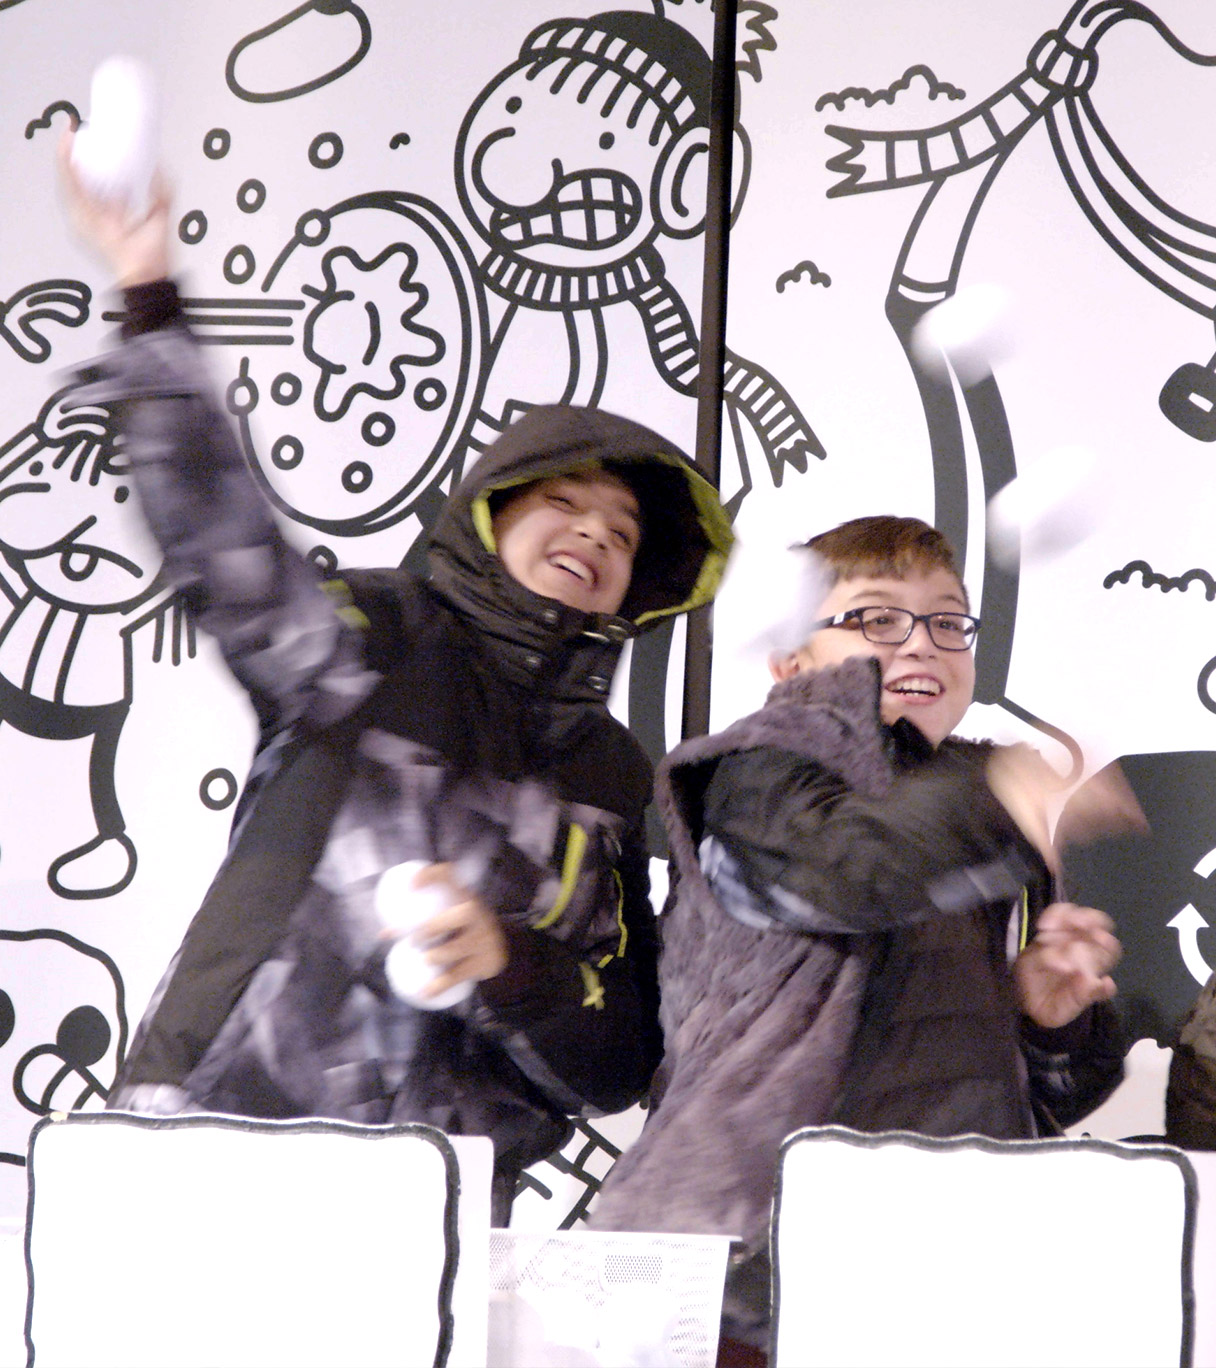 Children in a snowball fight at Diary of a Wimpy Kid